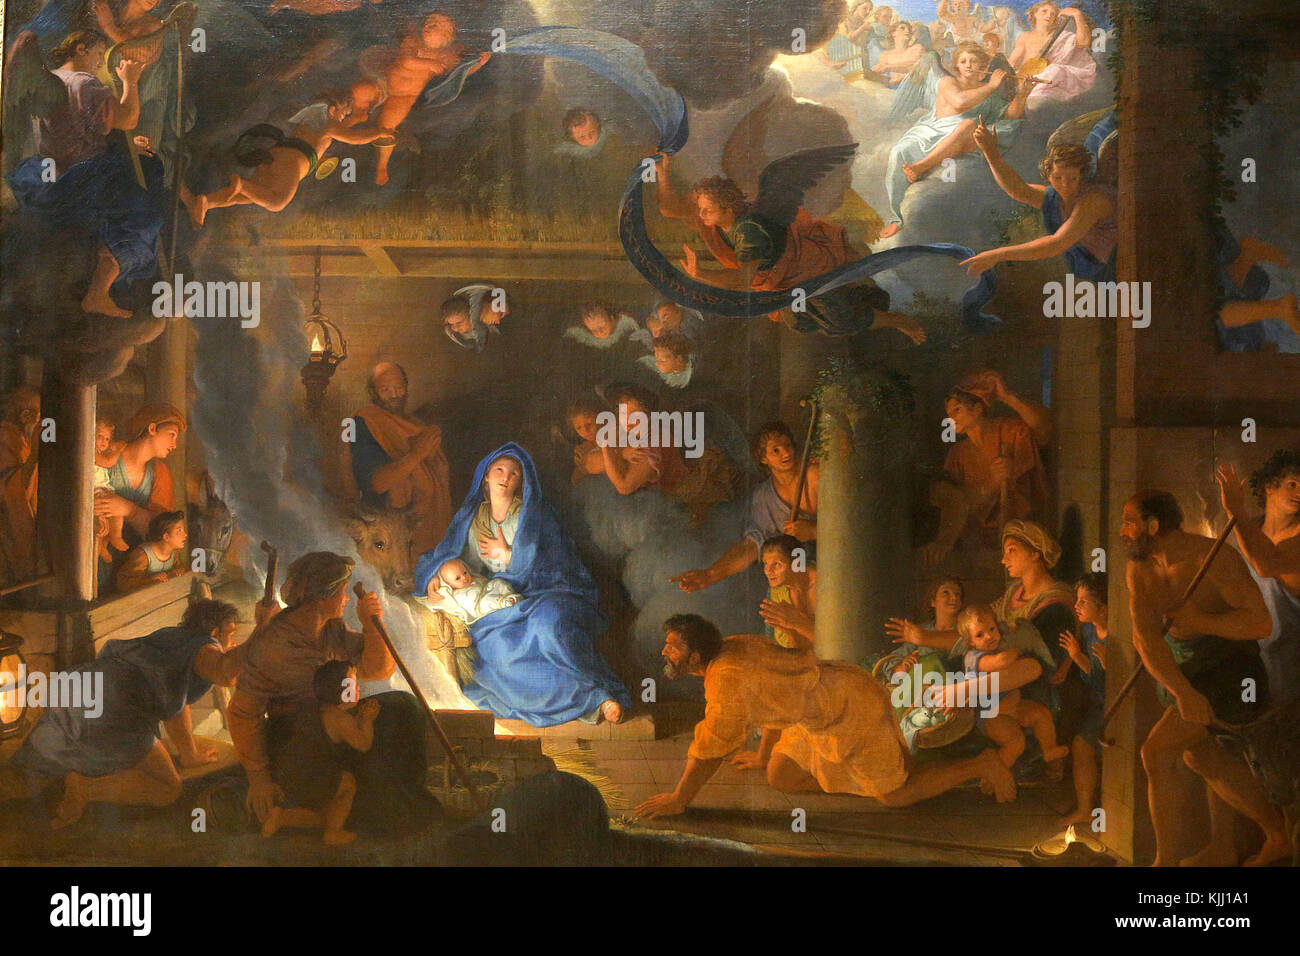 Louvre museum. The adoration of the shepherds. Charles Le Brun. 1689. France. - Stock Image